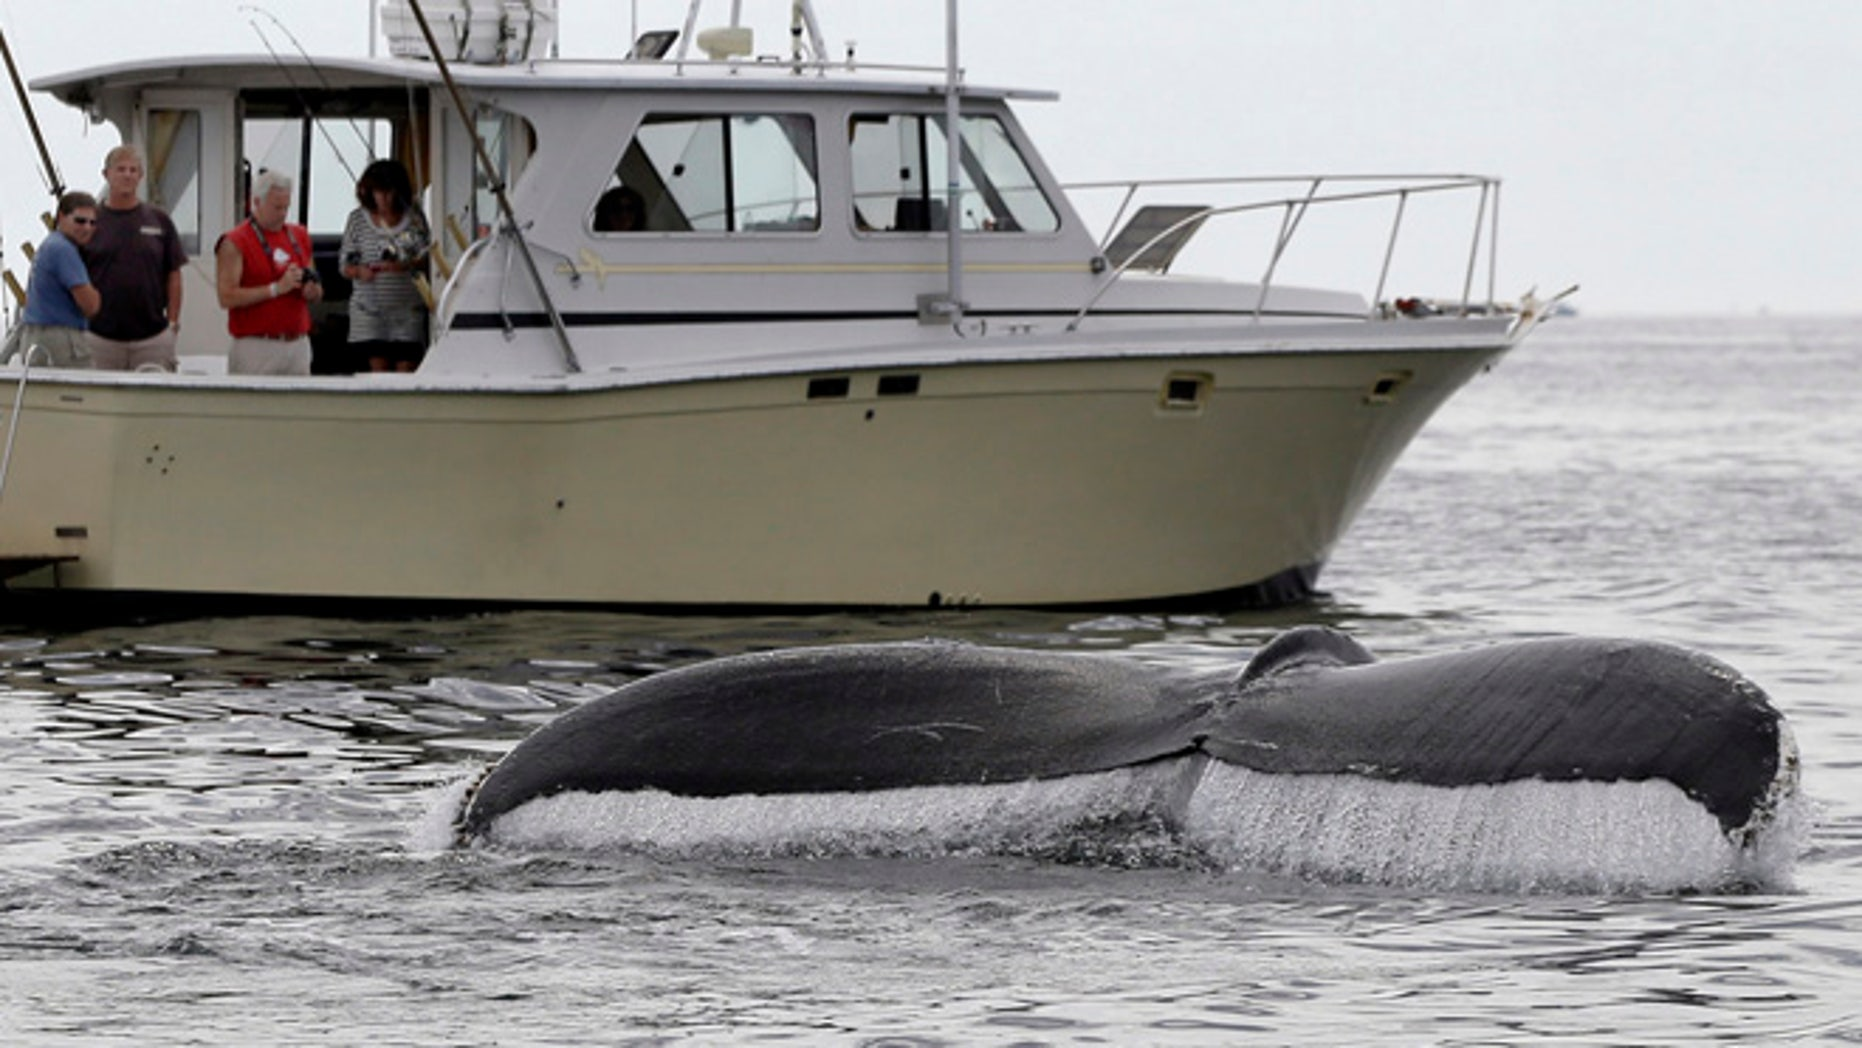 In this August 25, 2012 photo, boaters watch a humpback whale breach off the coast of Gloucester, Mass.